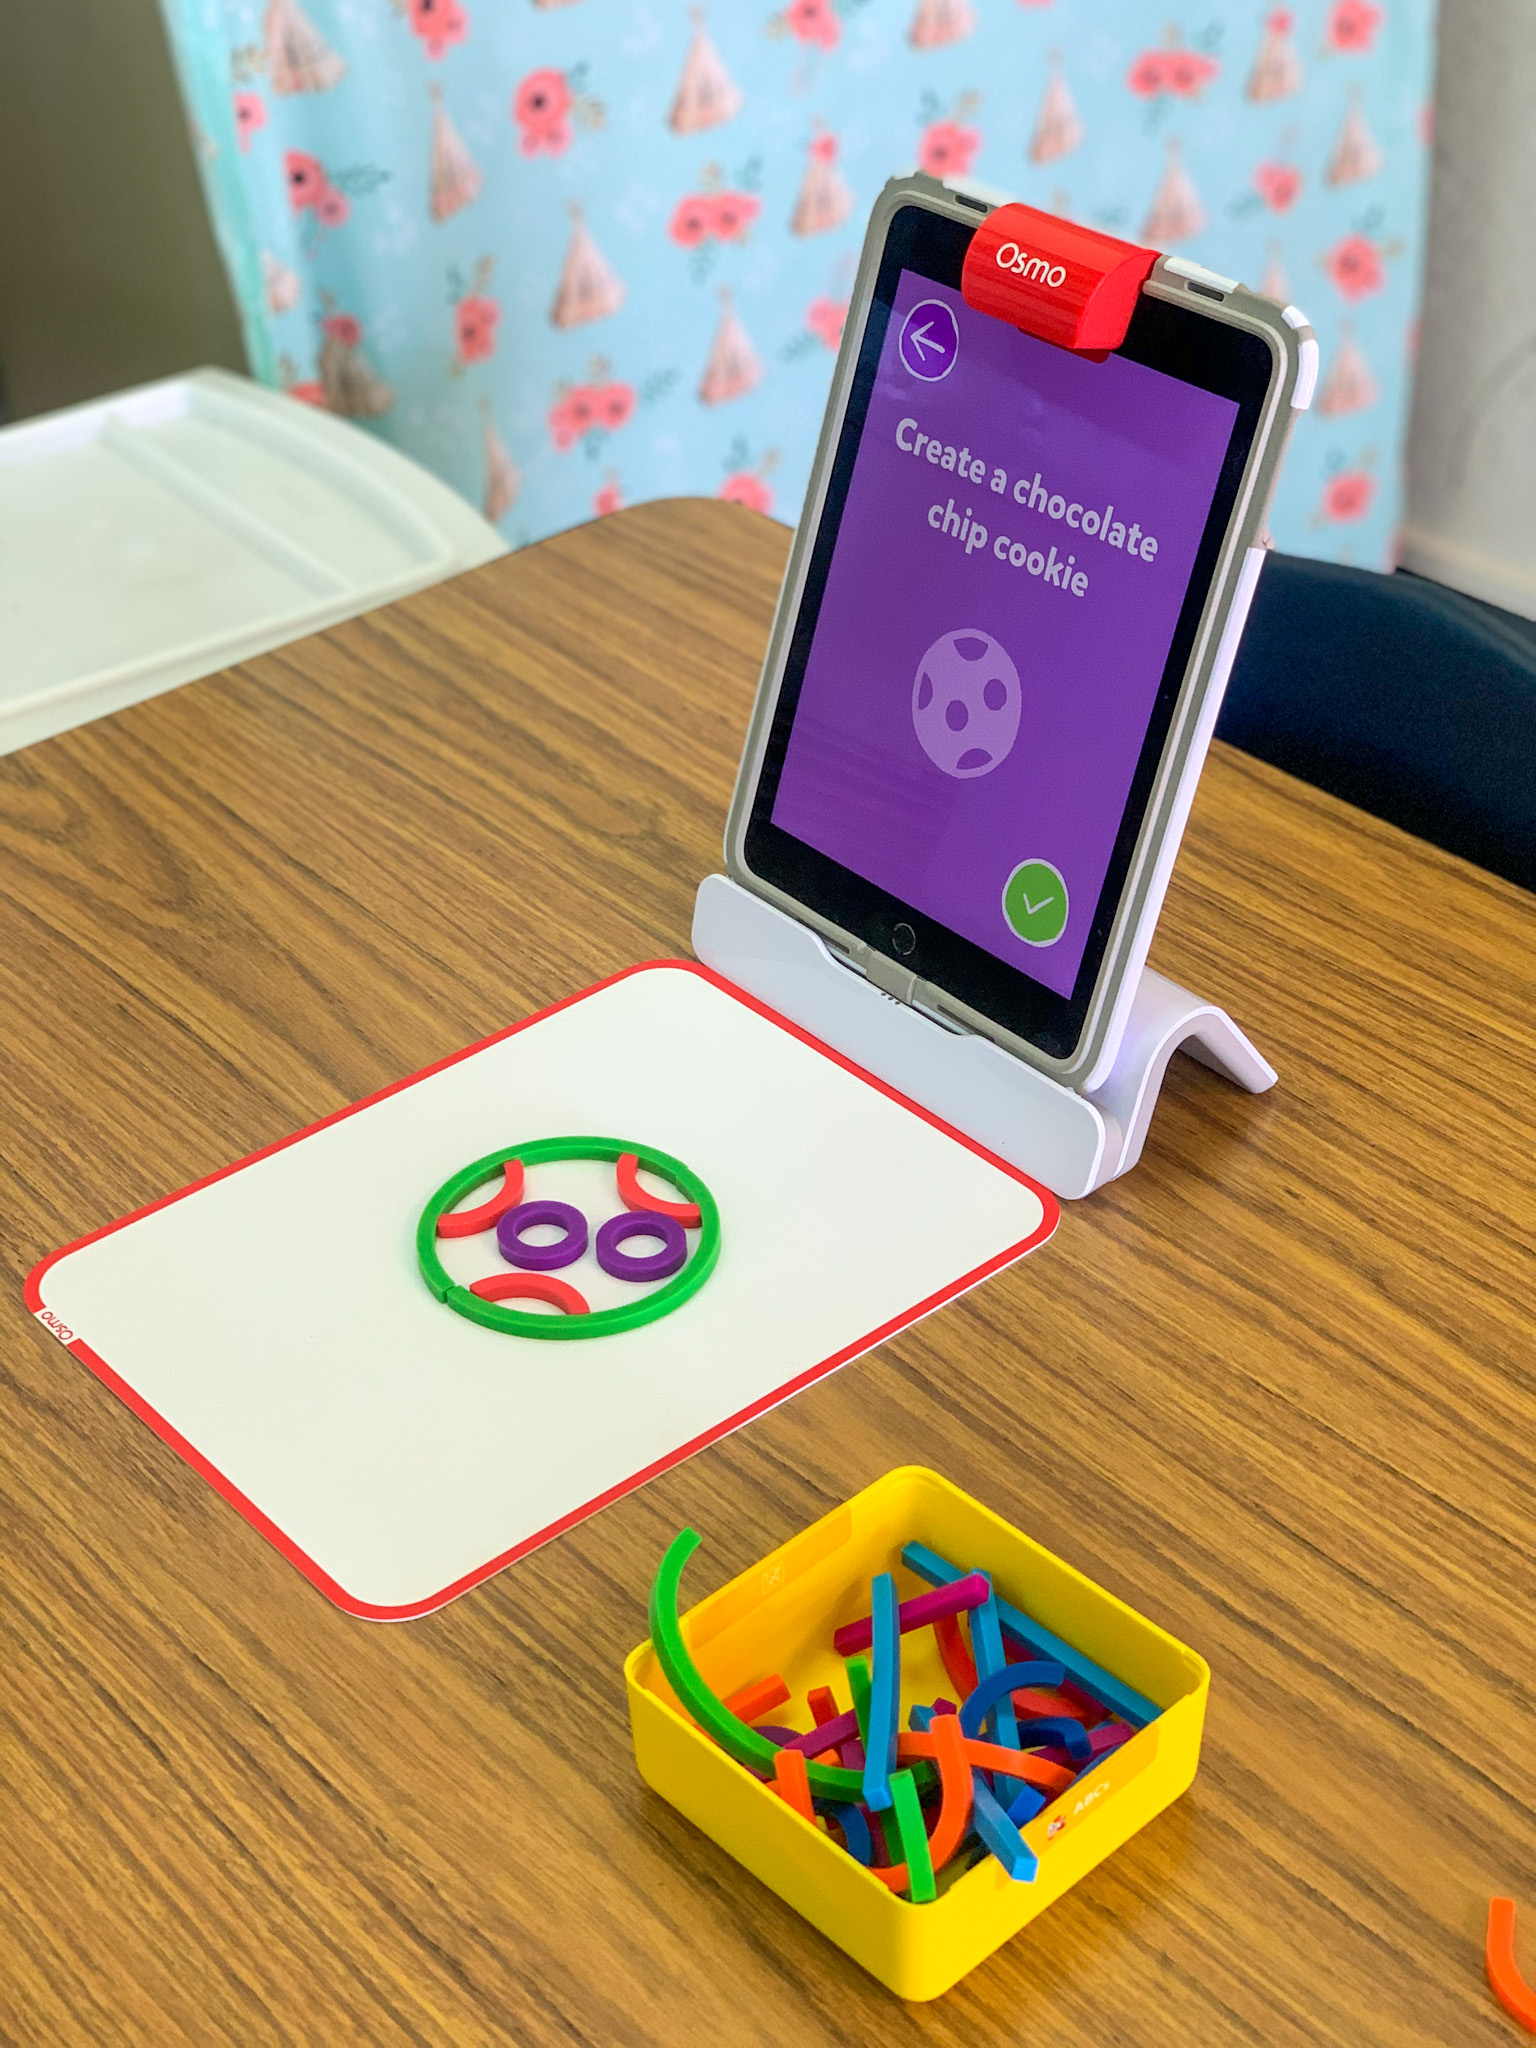 Here is my Osmo Center with the app and game Squiggle Magic.